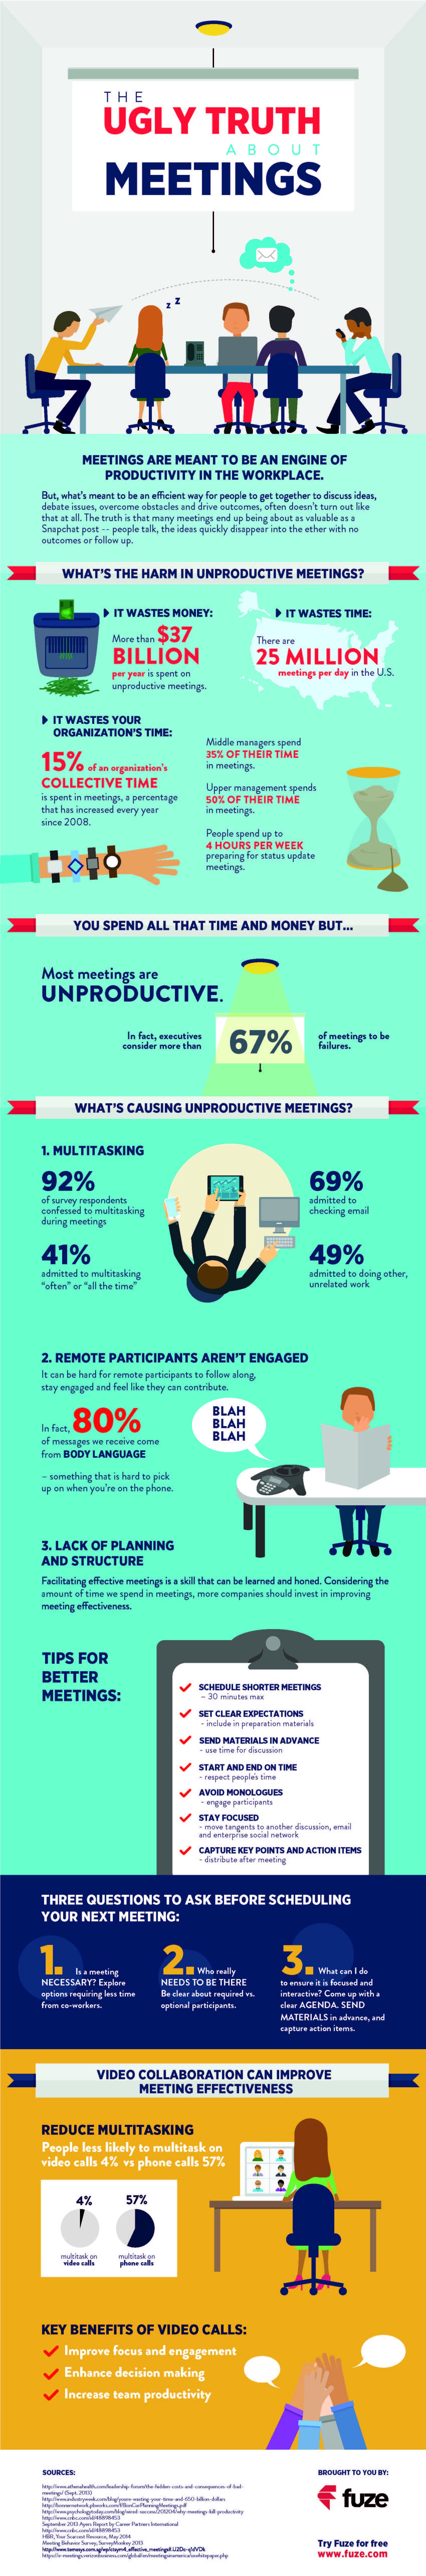 The ugly truth about meetings and how to fix it.